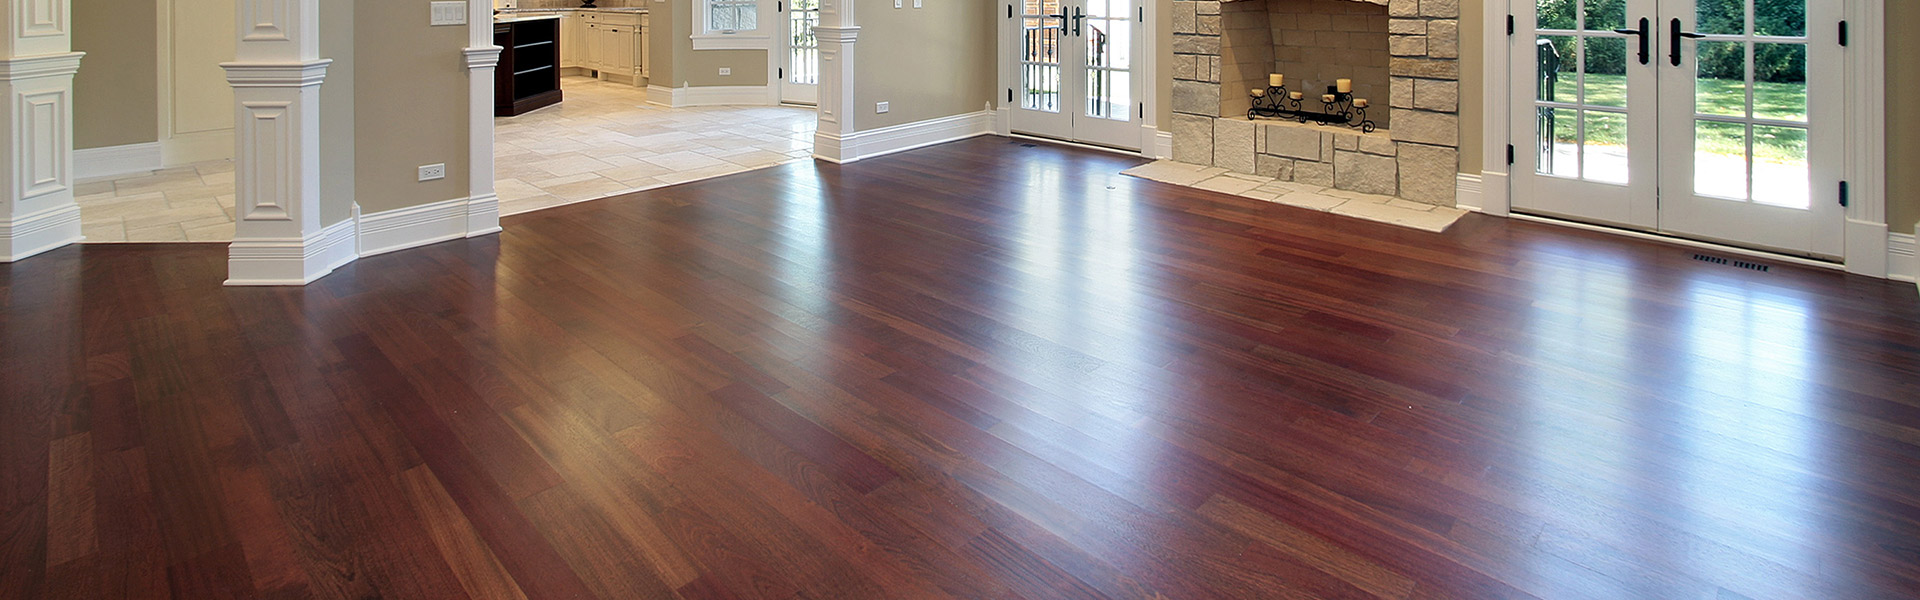 Professional Hardwood Flooring Installer With Over 30 Years Of Experience